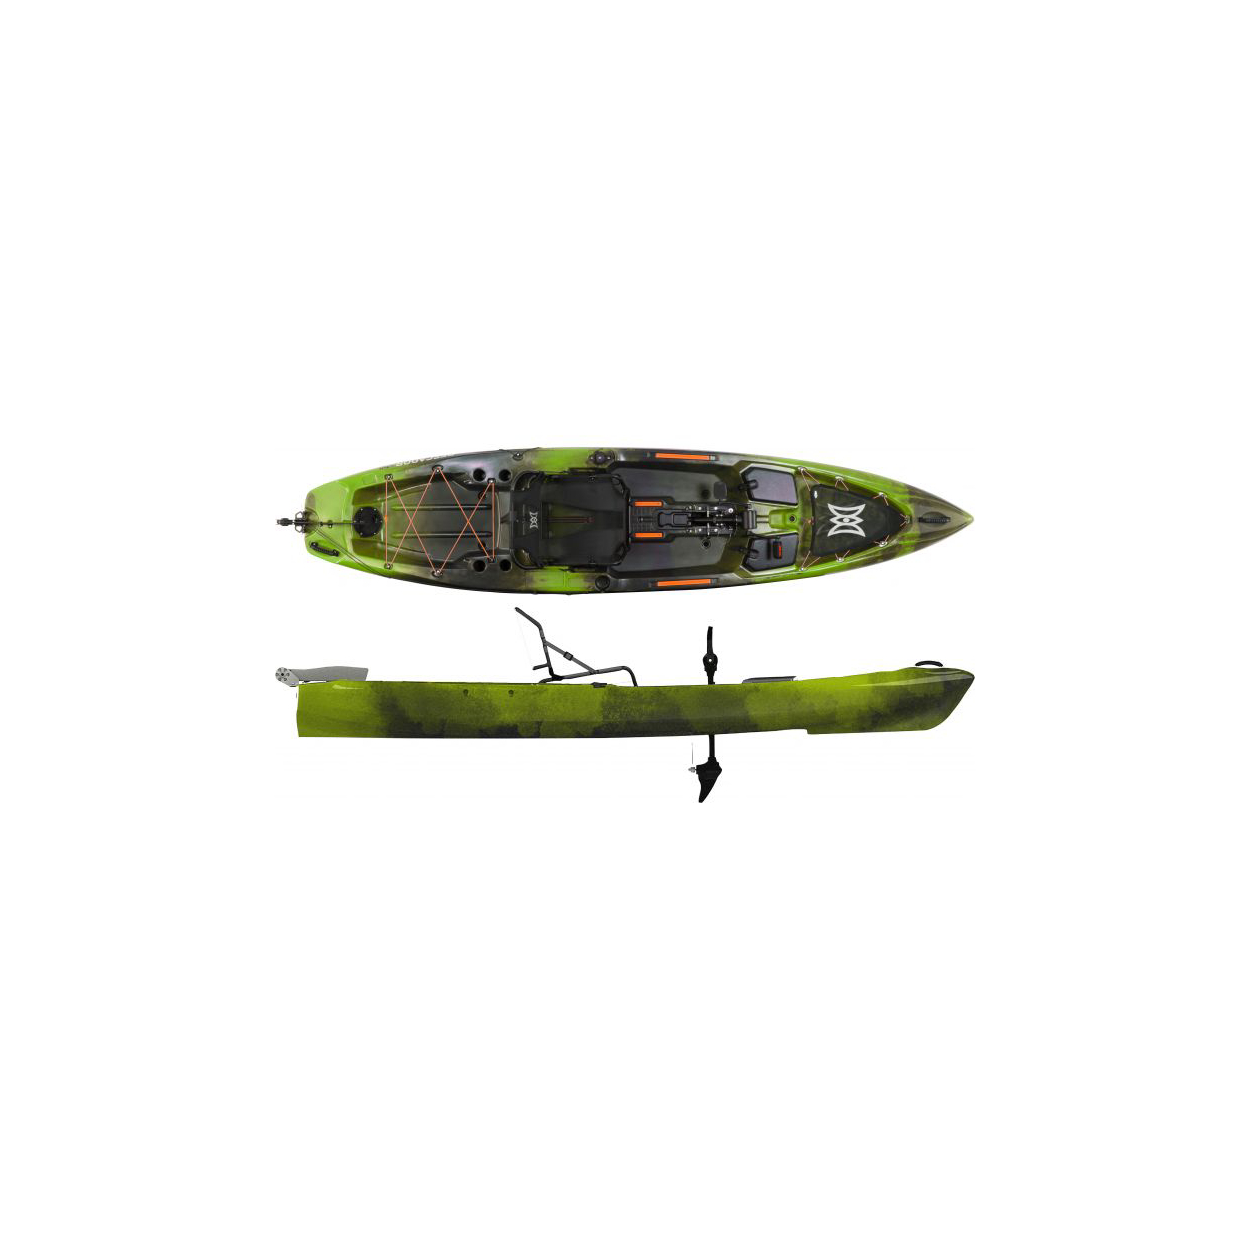 Shop Pedal & Motorized Kayaks for Sale at Austin Kayak - ACK